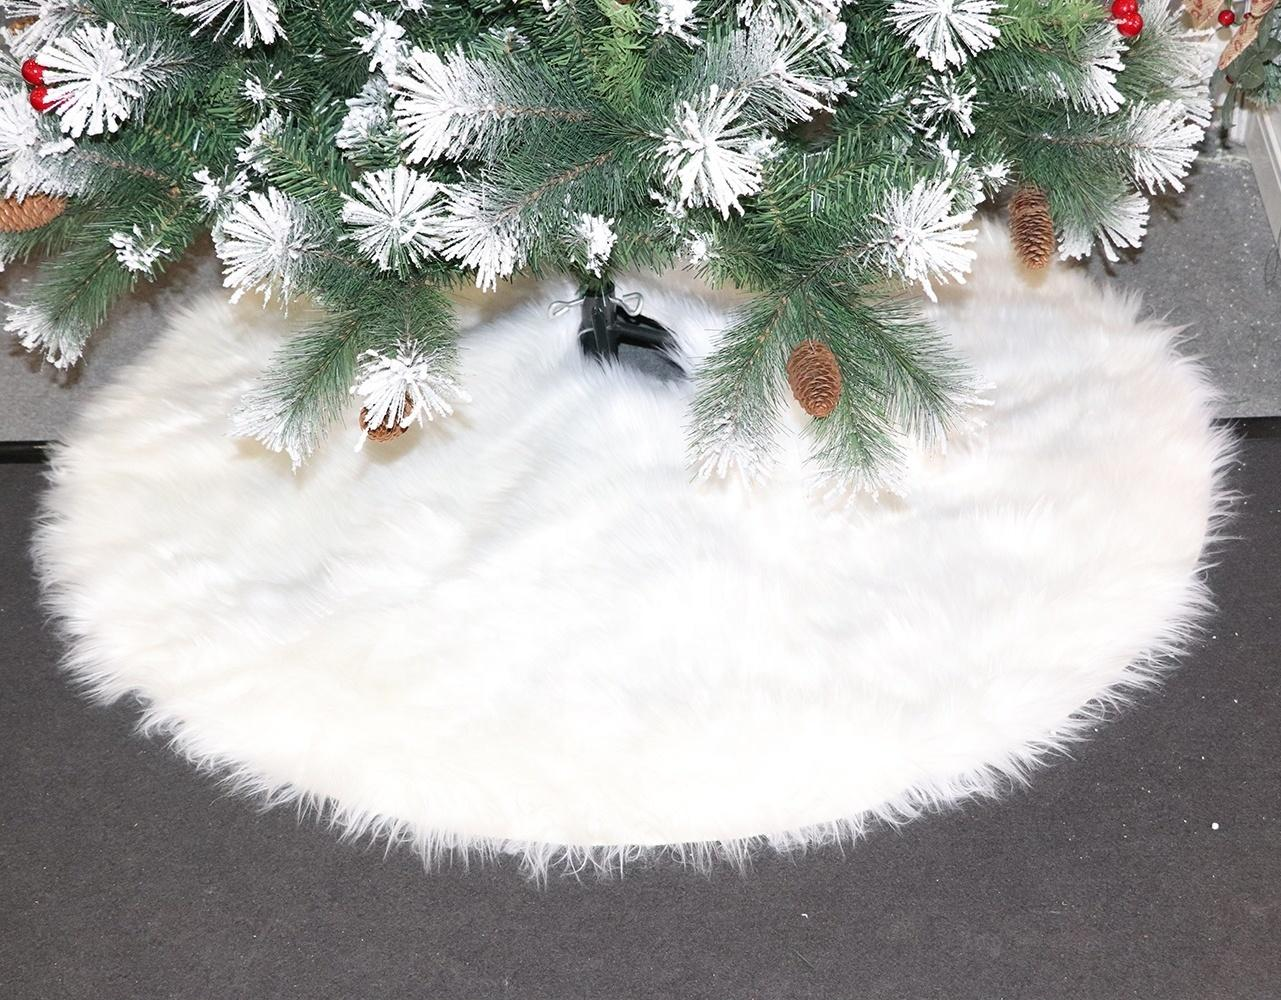 84 Handmade Inch Cheap Extra Large Personalized Xmas Wicker Collars White Faux Fur Christmas Tree Skirt 3rhp Christmas Room Decorations Christmas Sale Decorations From Hallowxmas2020 8 85 Dhgate Com